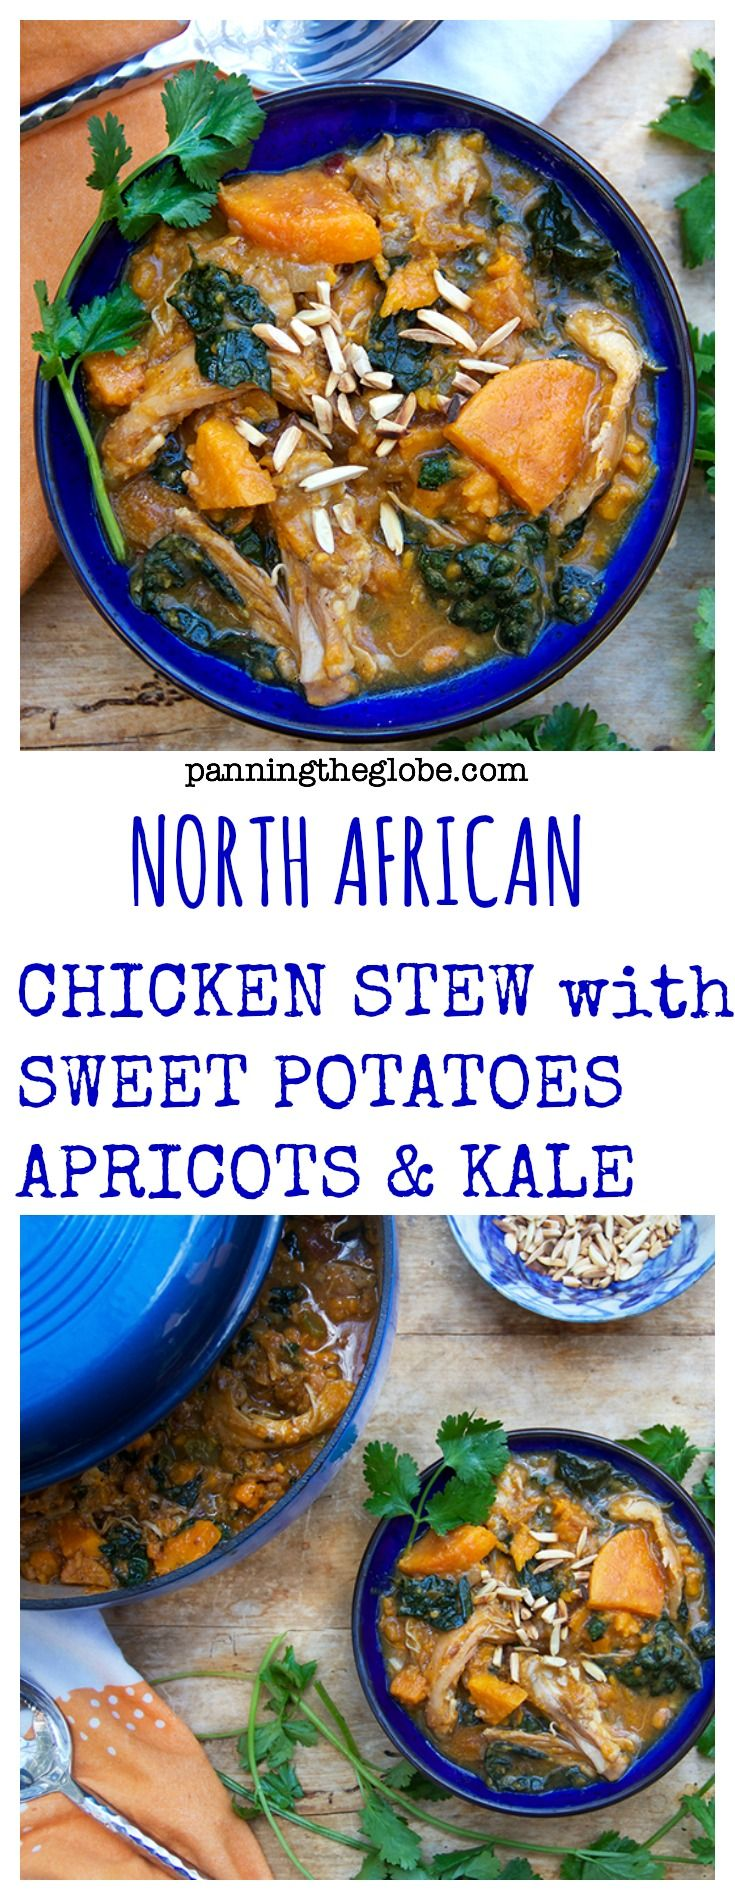 Amazing flavors of cinnamon, apricots, ginger, garlic, and lemon in this delicious stew of tender chicken thighs, sweet potatoes and kale.